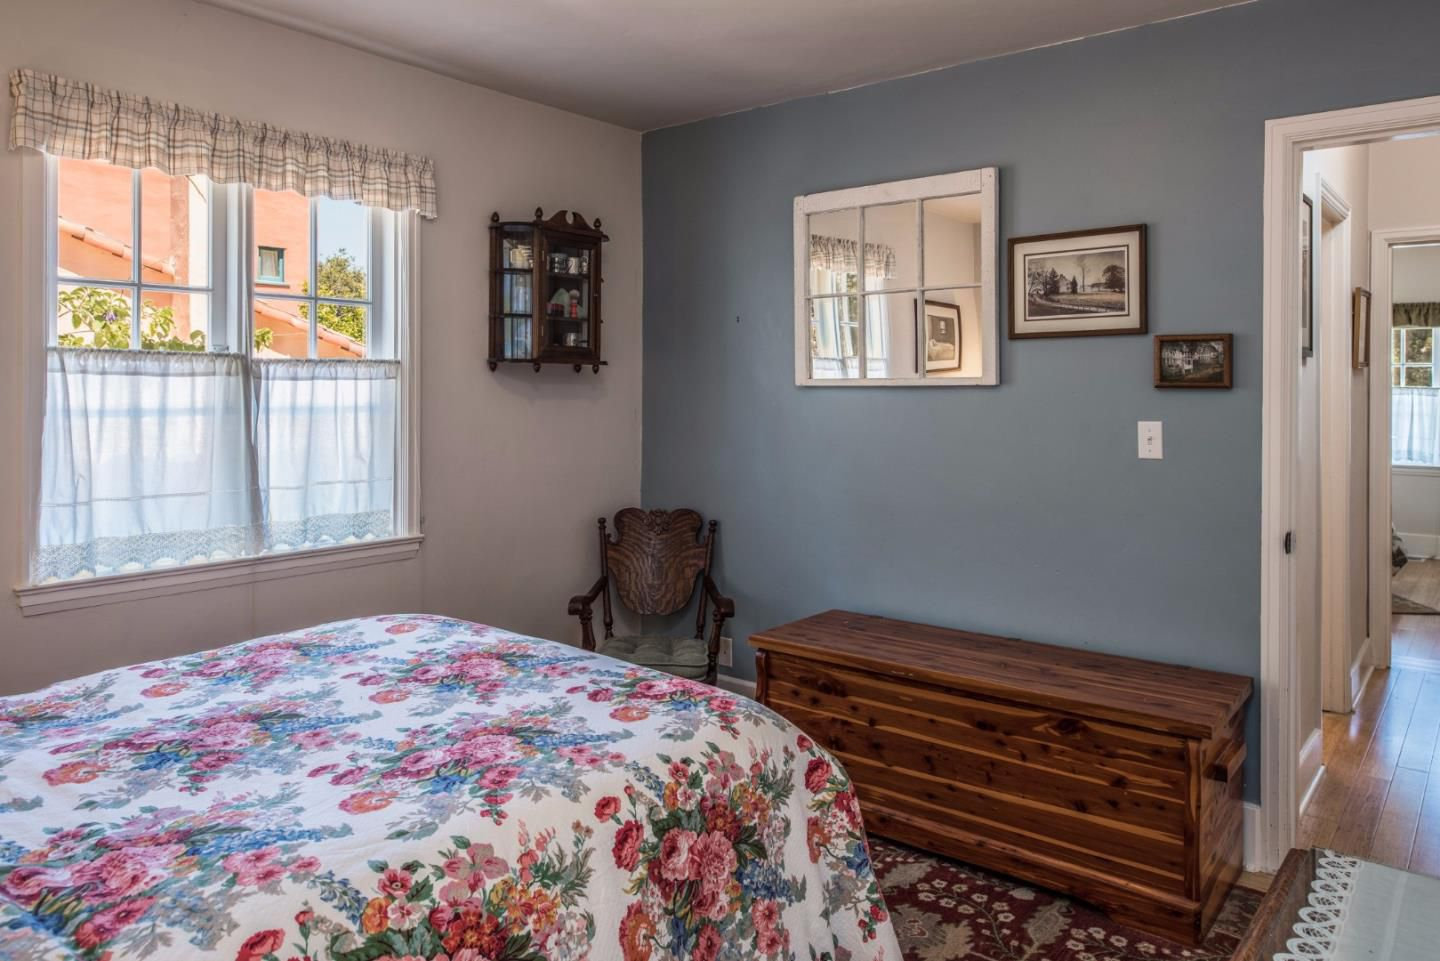 950 14th St, Pacific Grove, CA for sale in Candy Cane Lane neighborhood - bedroom